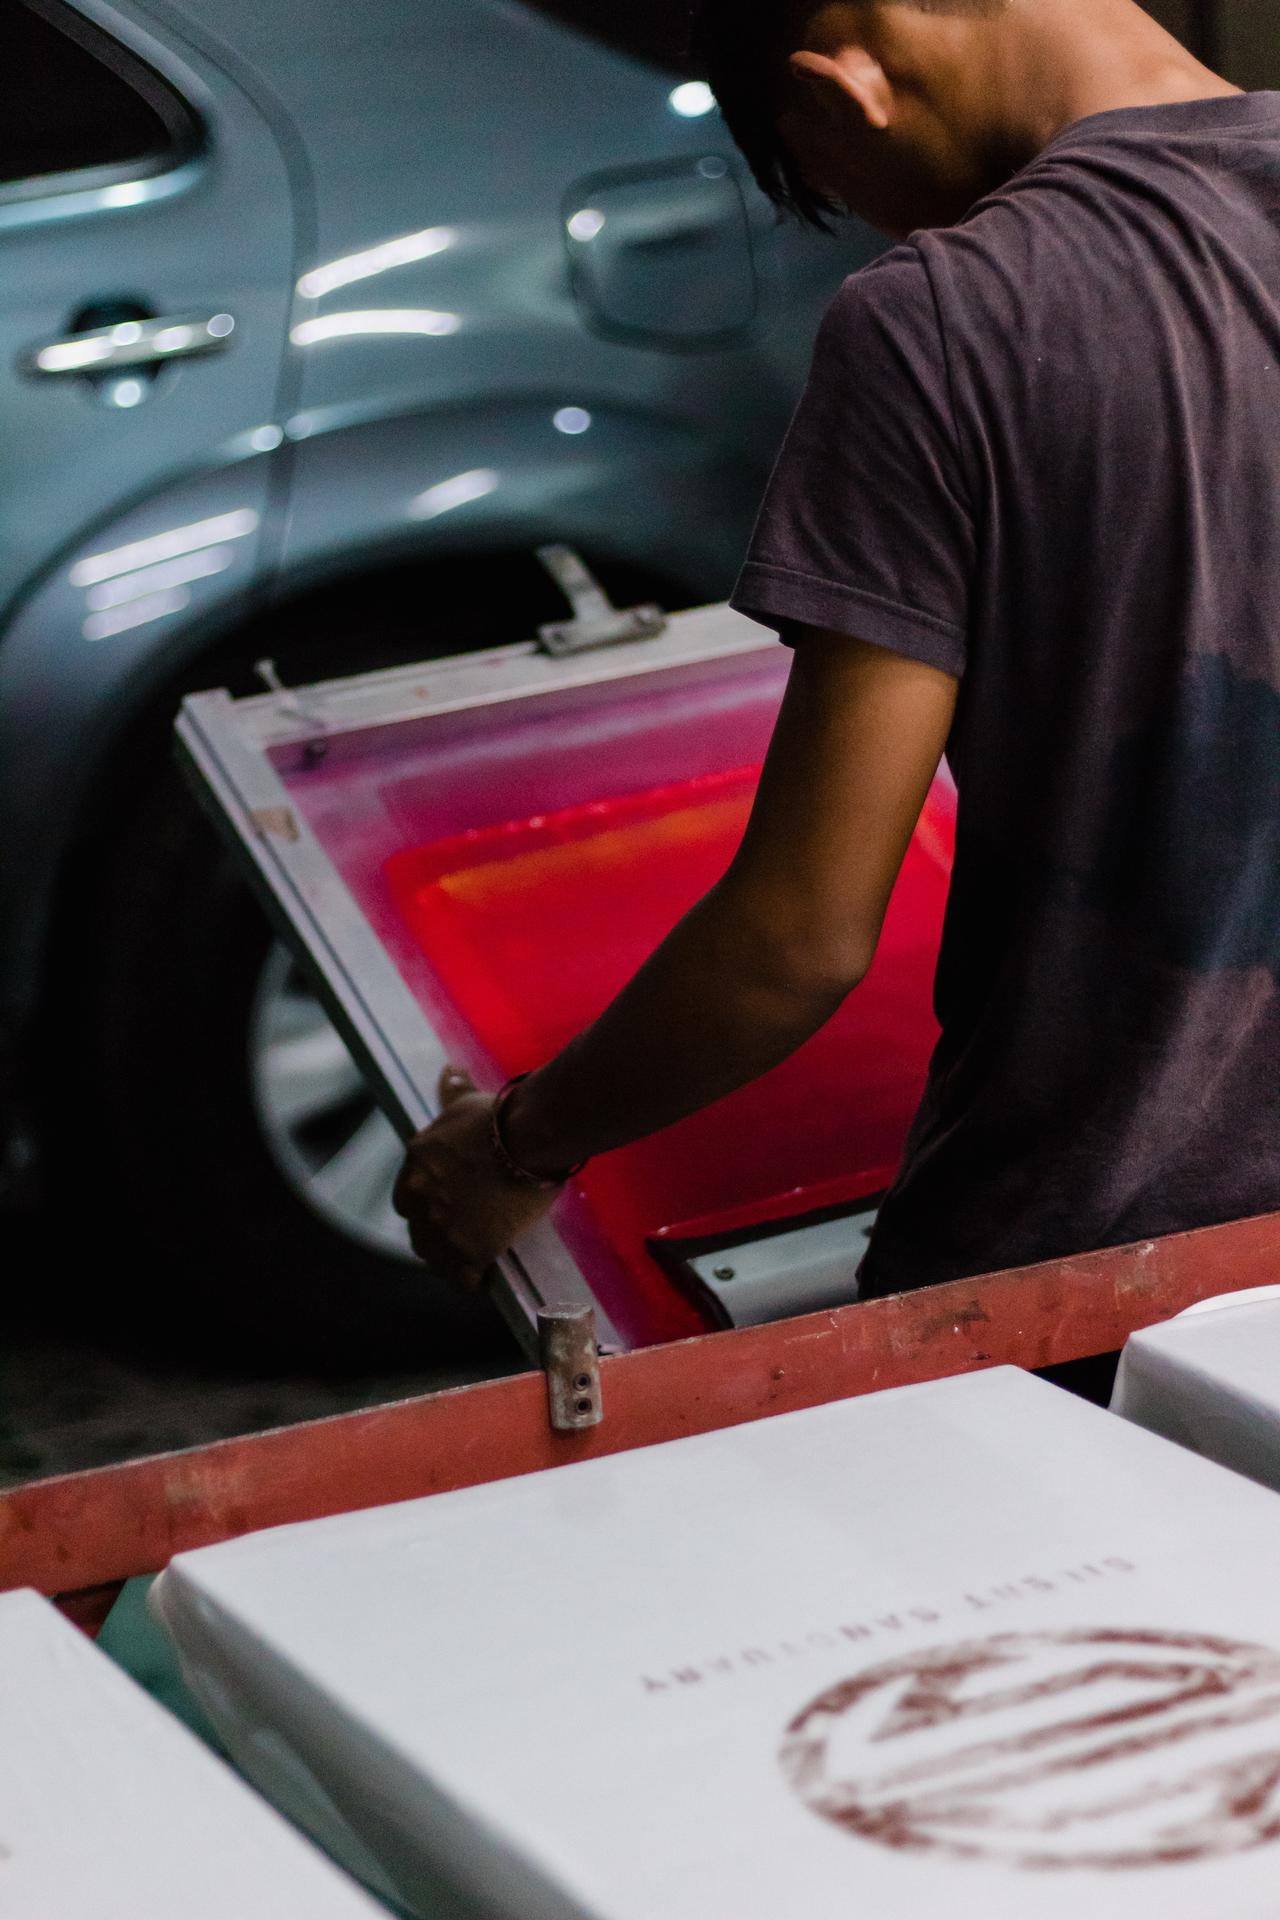 screen printing process using hot pink ink